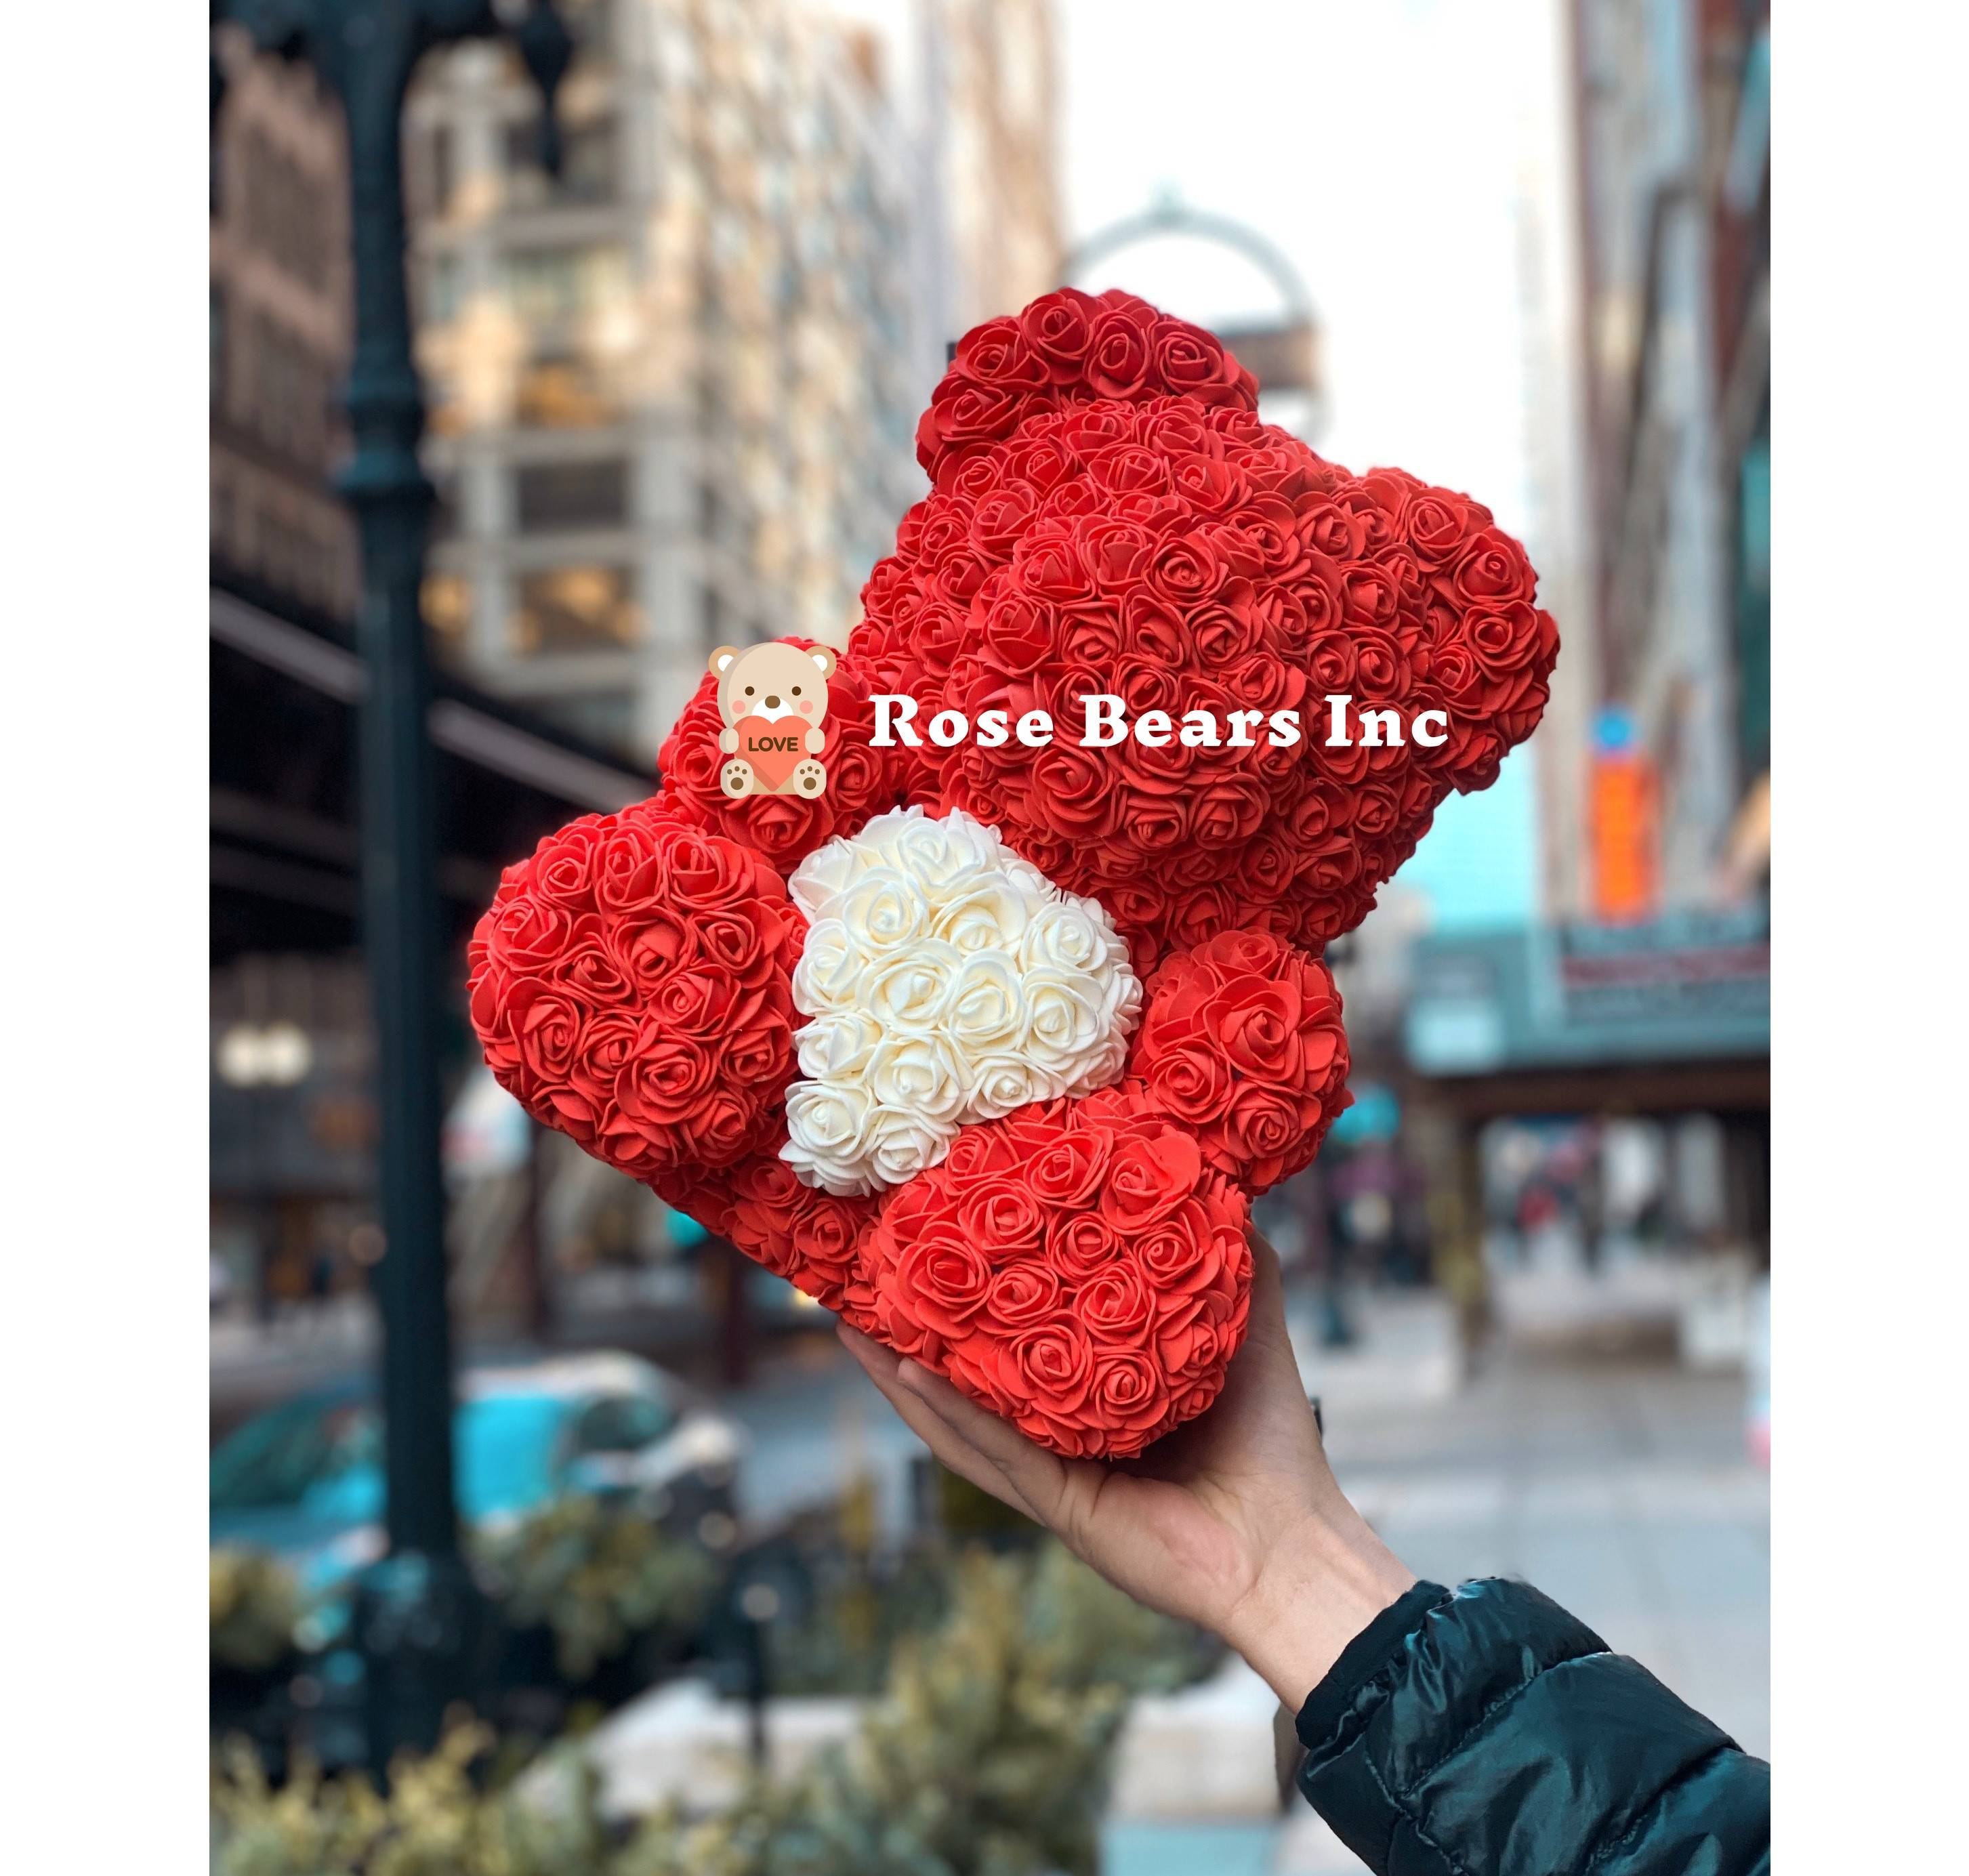 gifts for her under $100, perfect gifts for her valentines, rose bear valentines day,best gifts for valentine's day